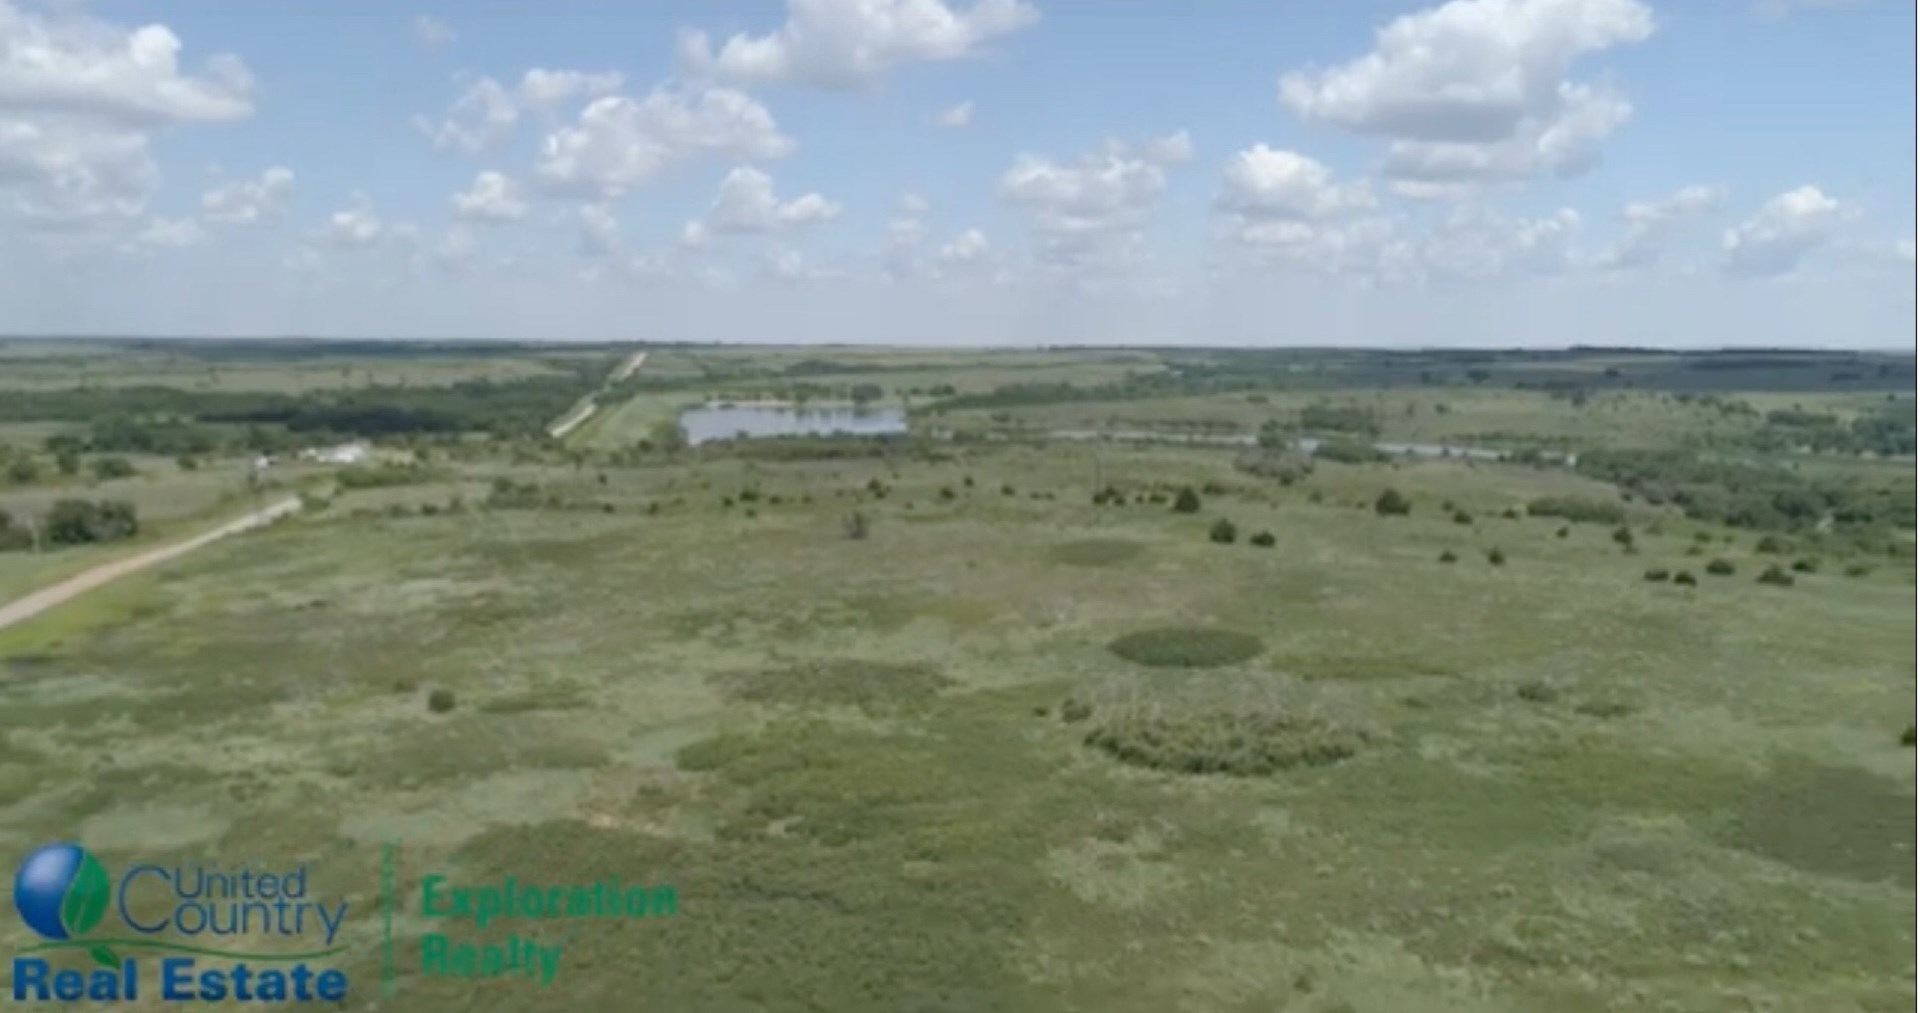 land for sale in Roger Mills Co